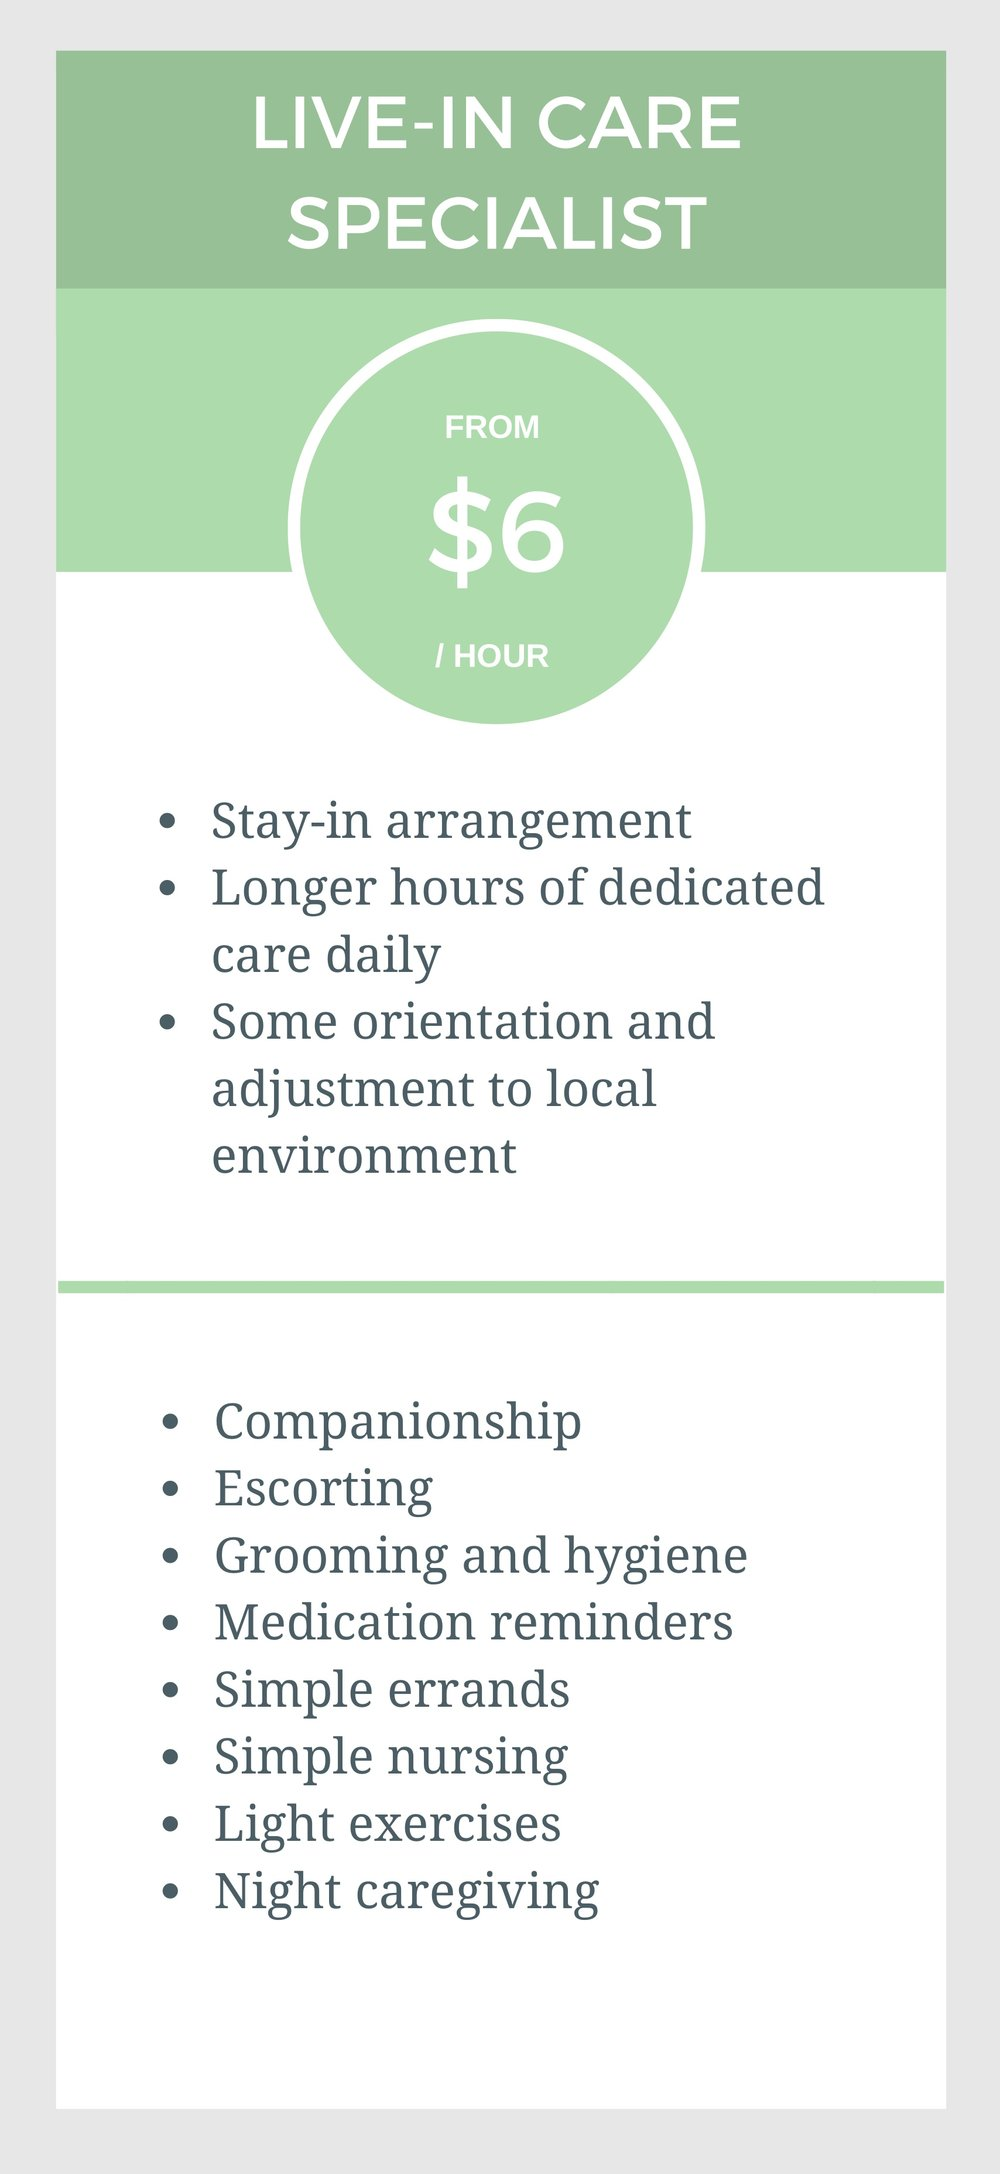 live-in care specialist specifications